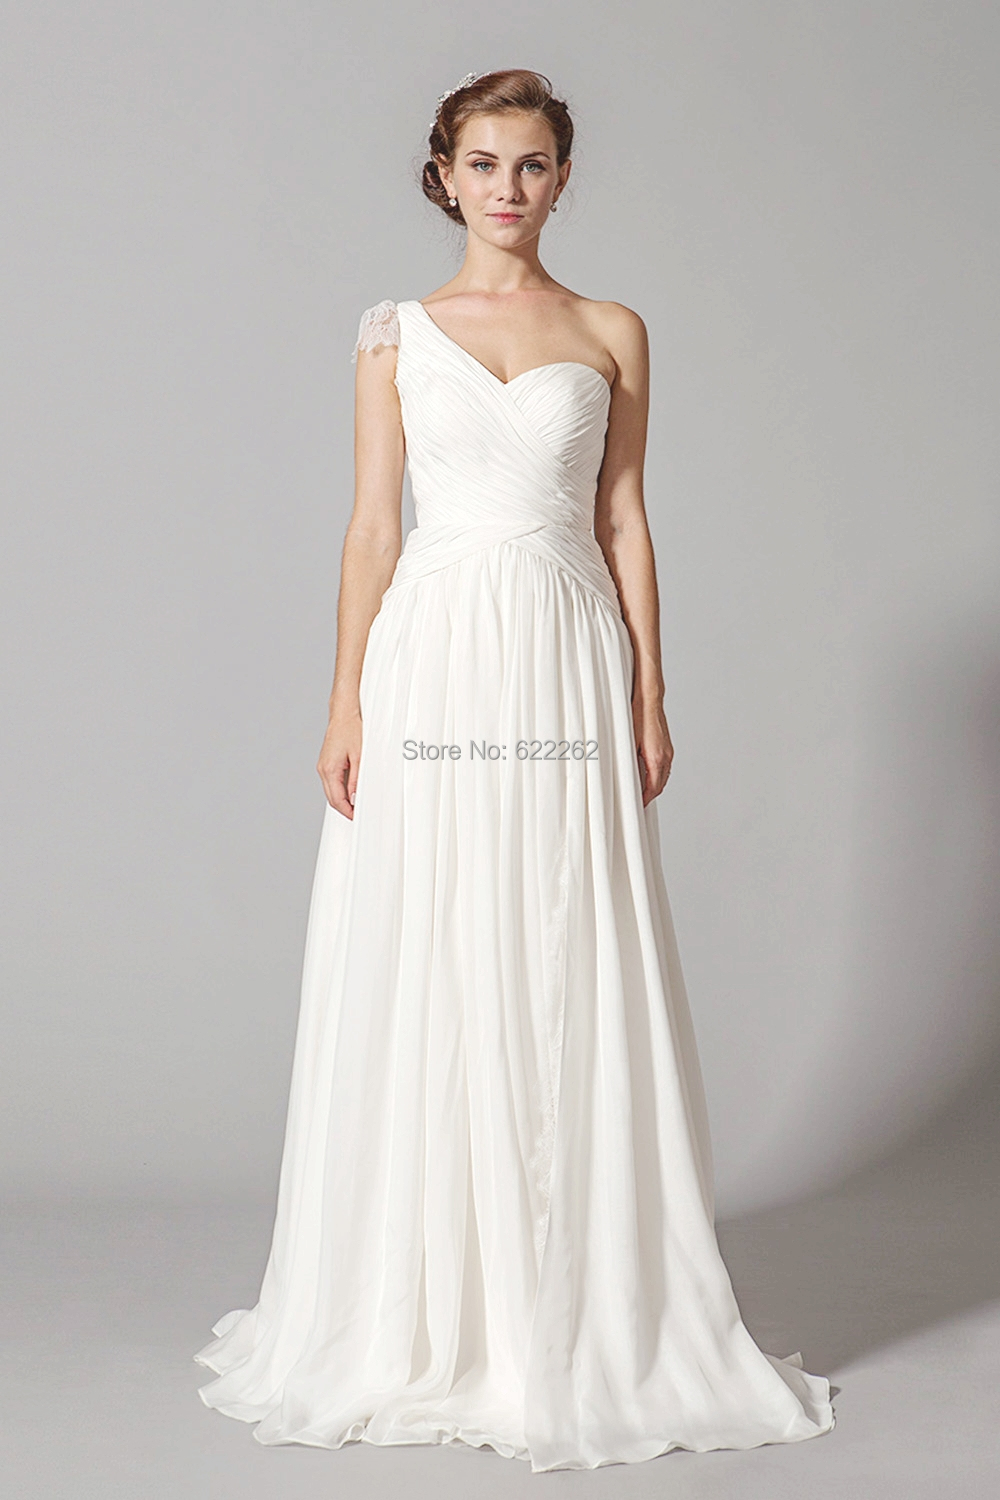 One shoulder pleats high quality white wedding dresses for Lace mid length wedding dresses